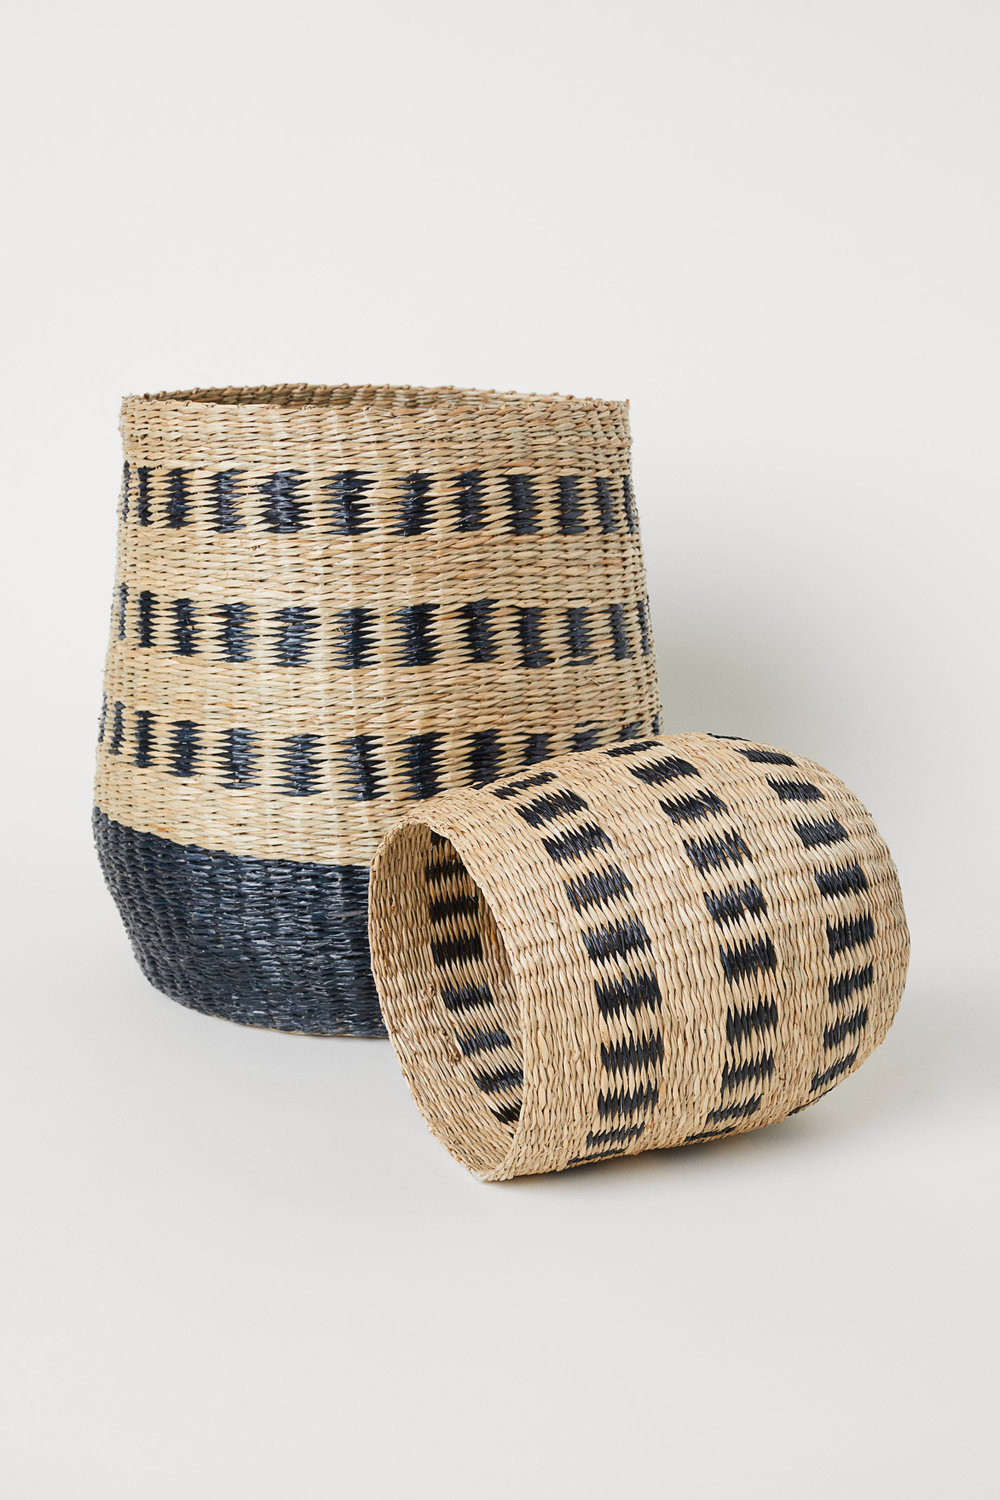 This basket from H&M home looks similar to the one we found at Marshalls!